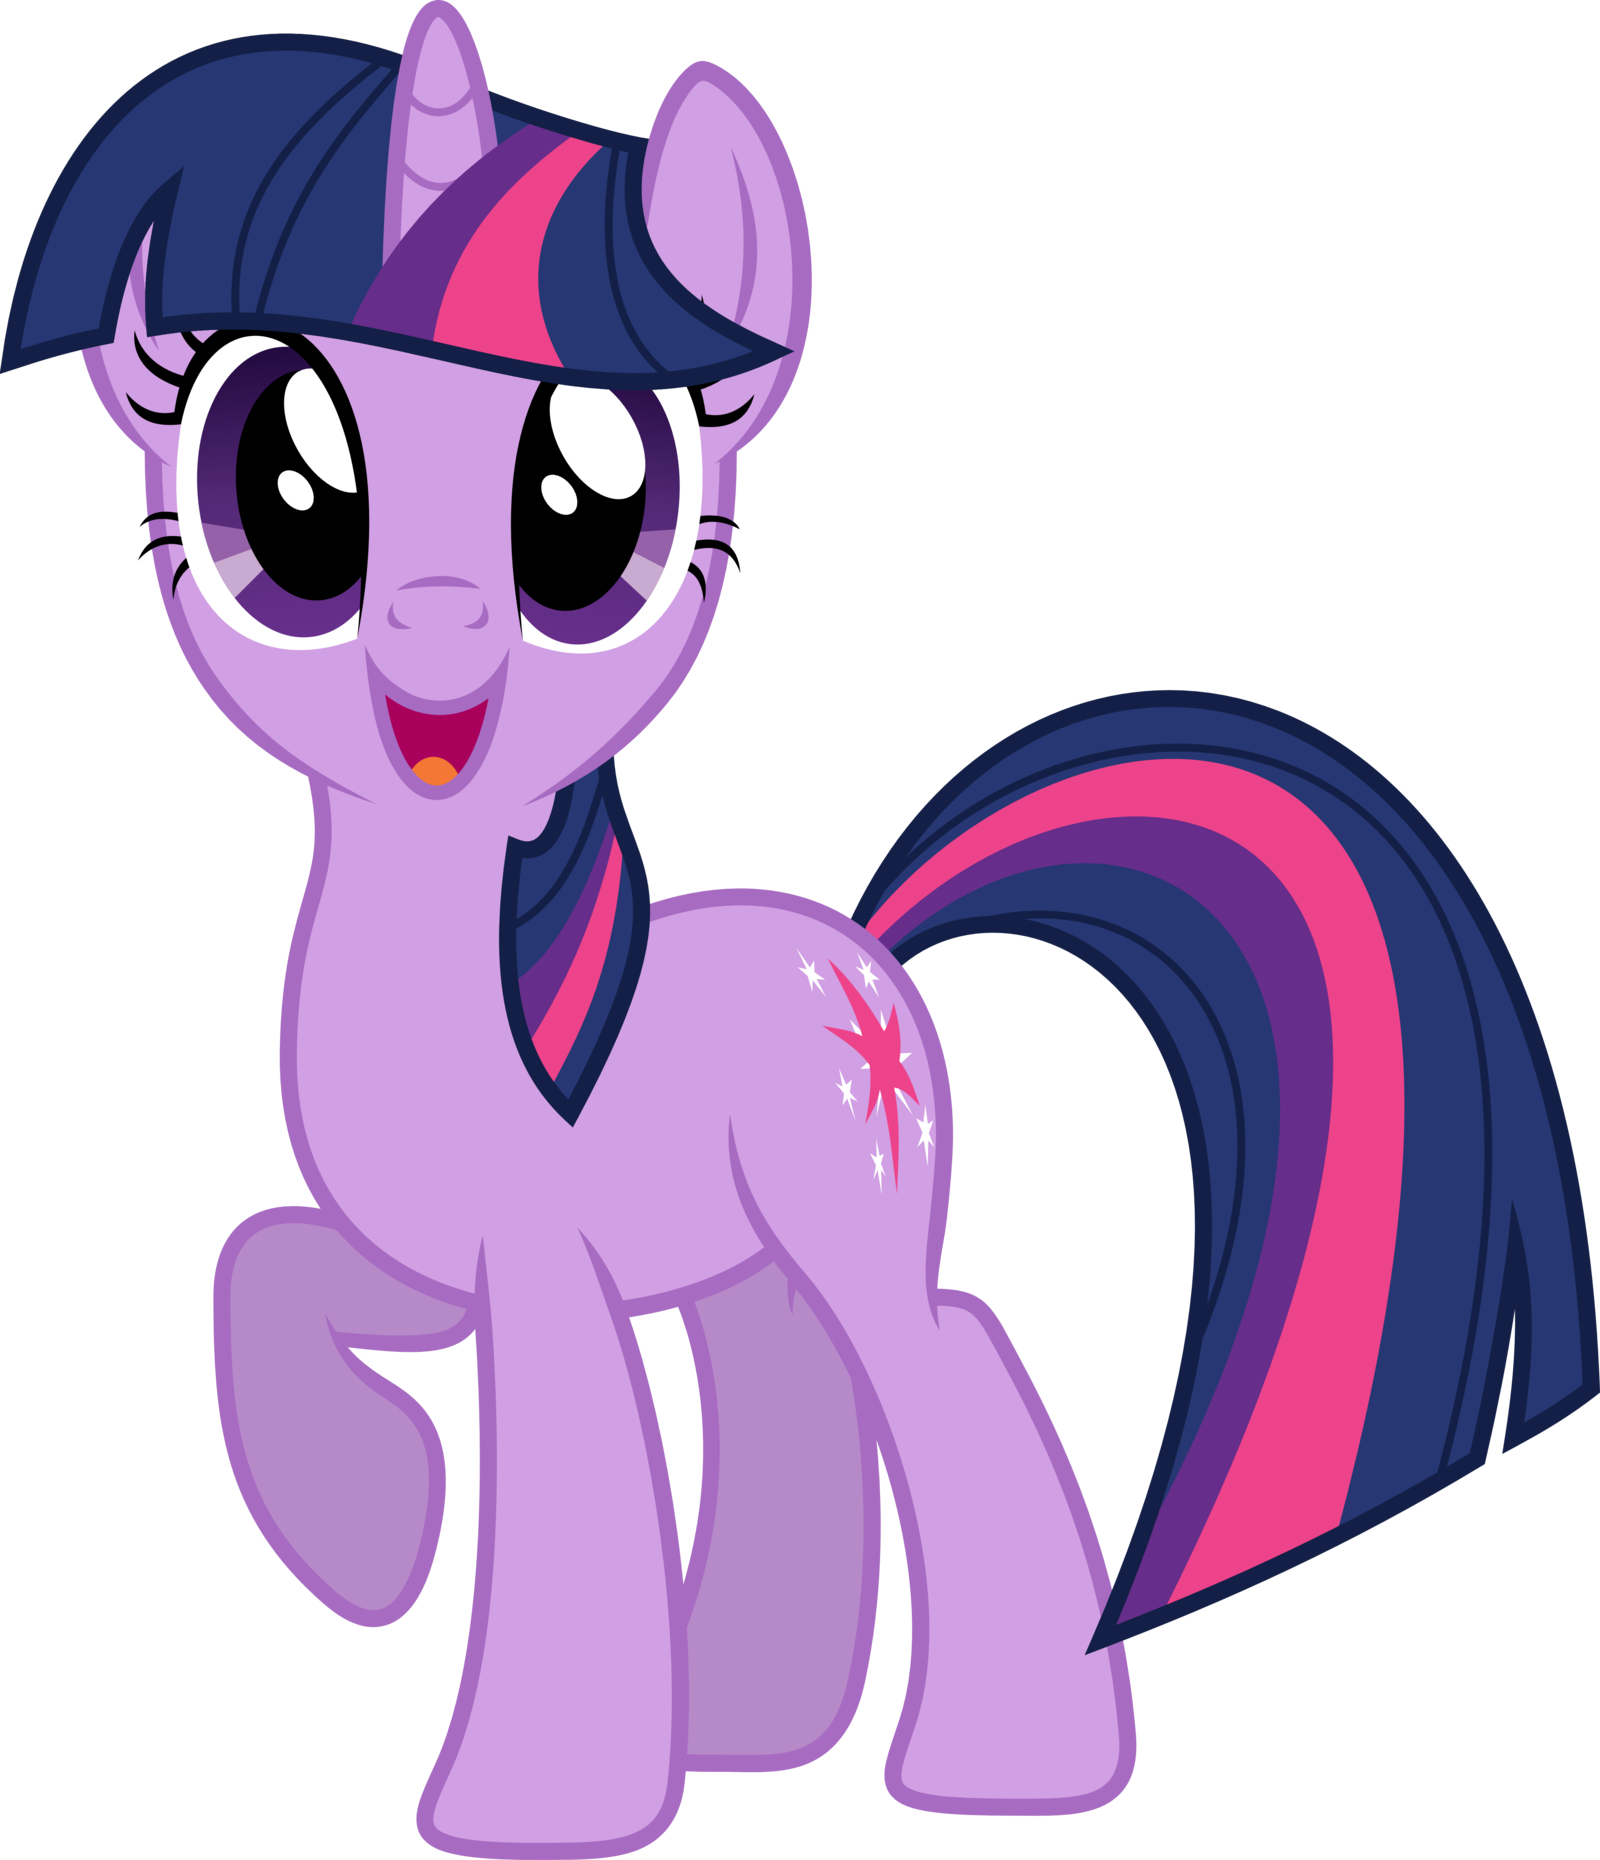 Single My Little Pony Pictures image #47134